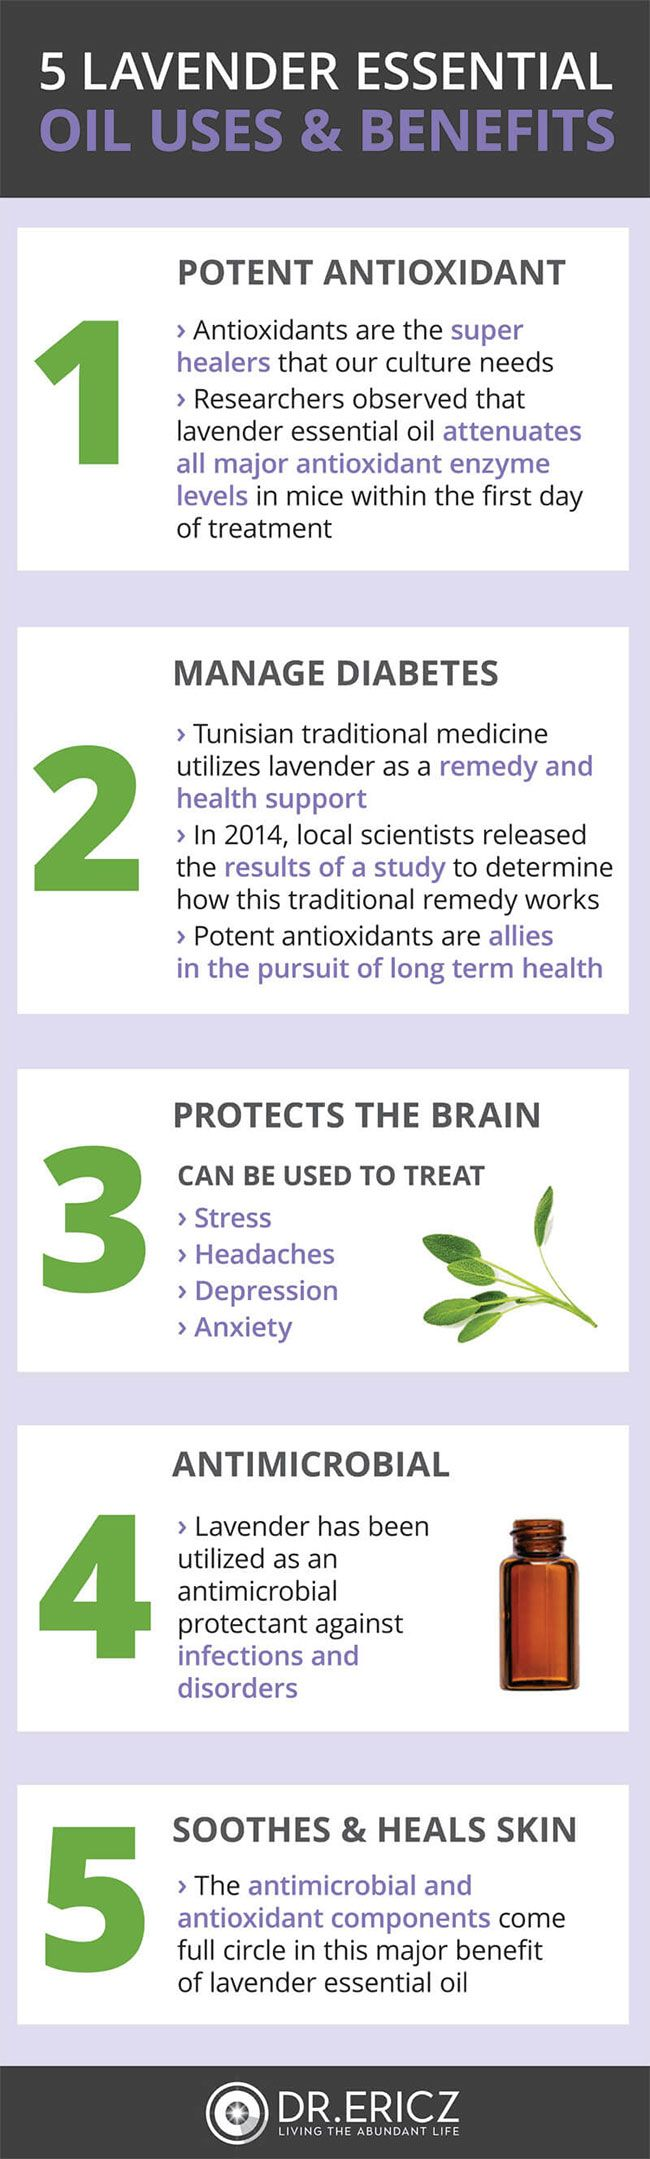 Lavender Essential Oil Uses Infographic